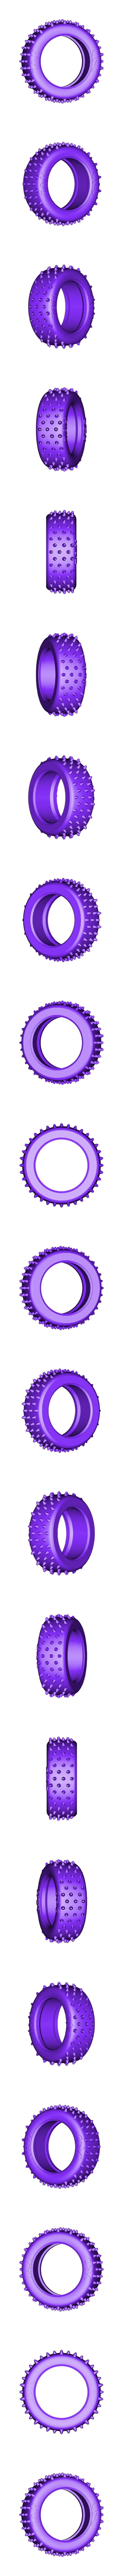 Tirefront02.stl Download free STL file Lynx - Fully 3D-printable 1/10 4wd buggy • Object to 3D print, tahustvedt